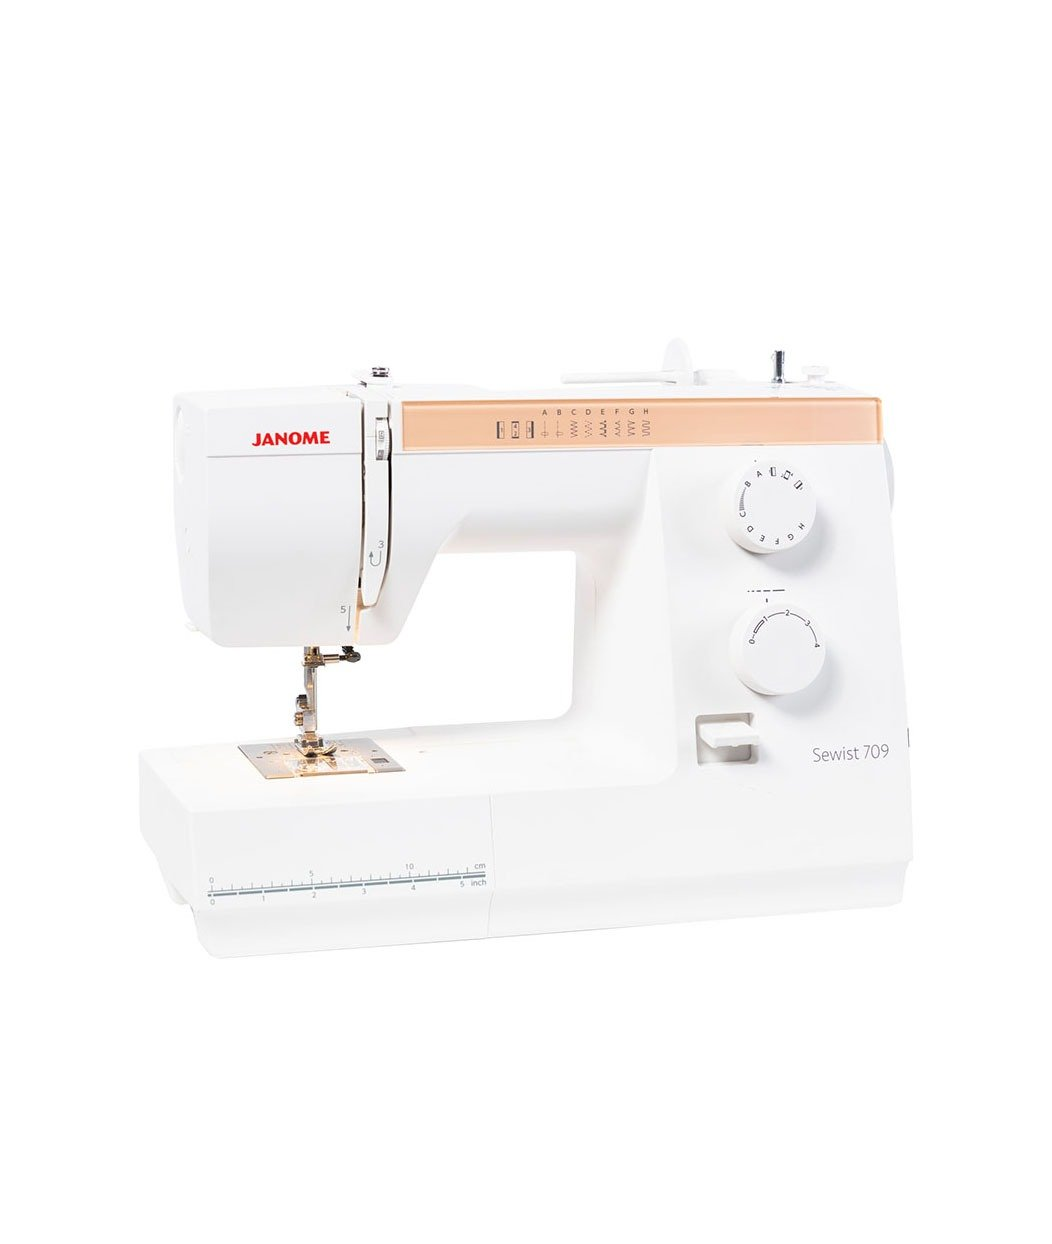 Janome Sewist 709 Mechanical Sewing Machine Stitches Buttonhole Free Arm Throat Threader Discount Spotlight Australia Western Australia Lessons Included